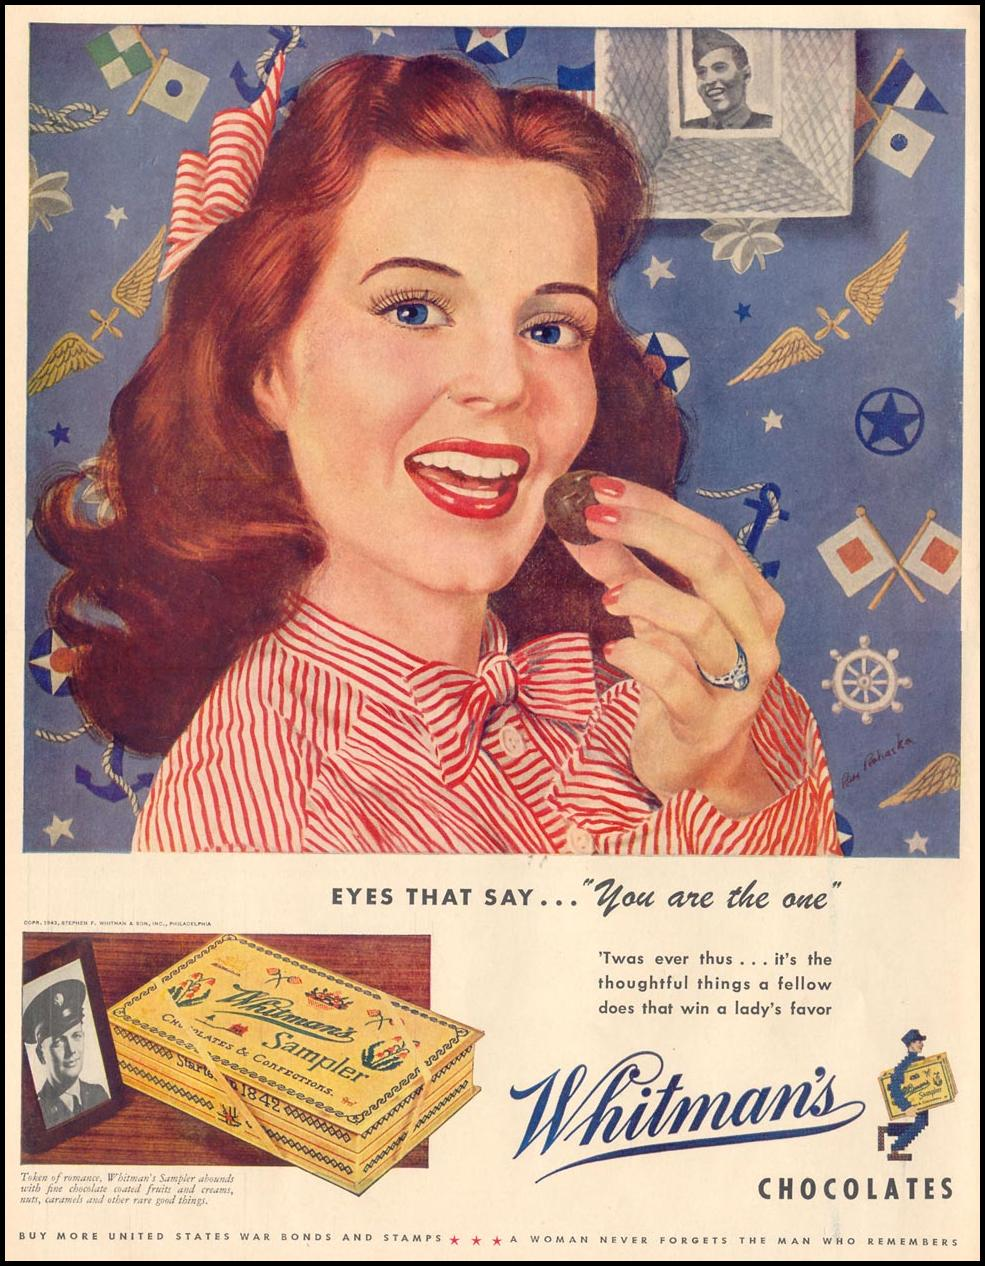 WHITMAN'S CHOCOLATES LIFE 11/08/1943